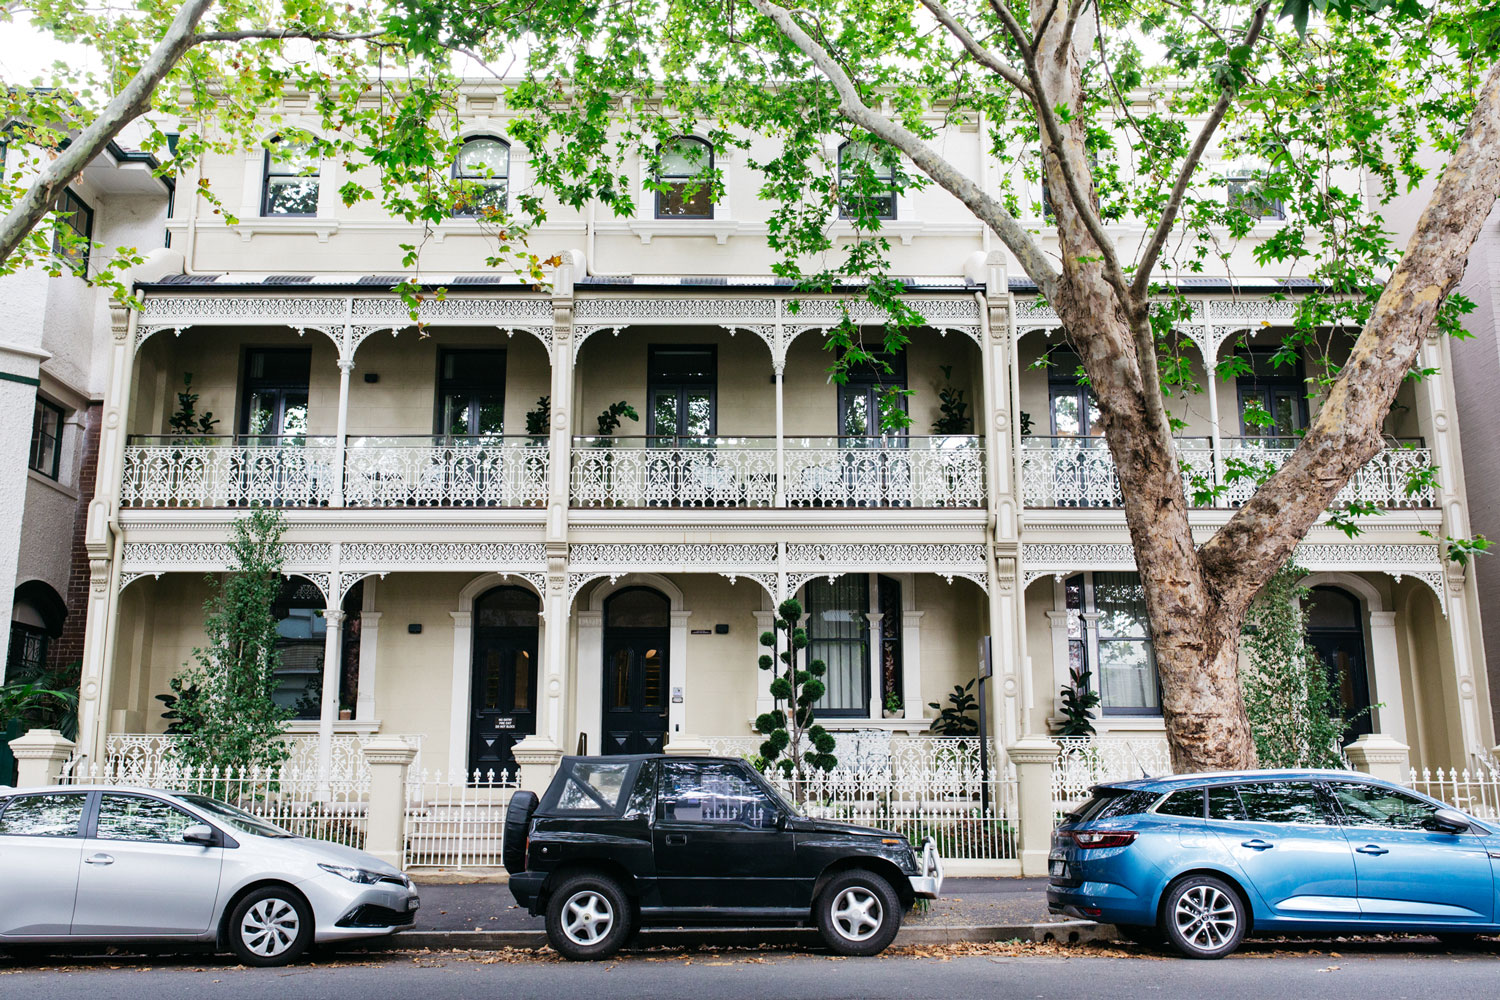 The_Ink_Collective_Creative_Content_Agency_Paris_Editorial_Luxury_Travel_Guide_Review_Sydney_Australia_13.JPG